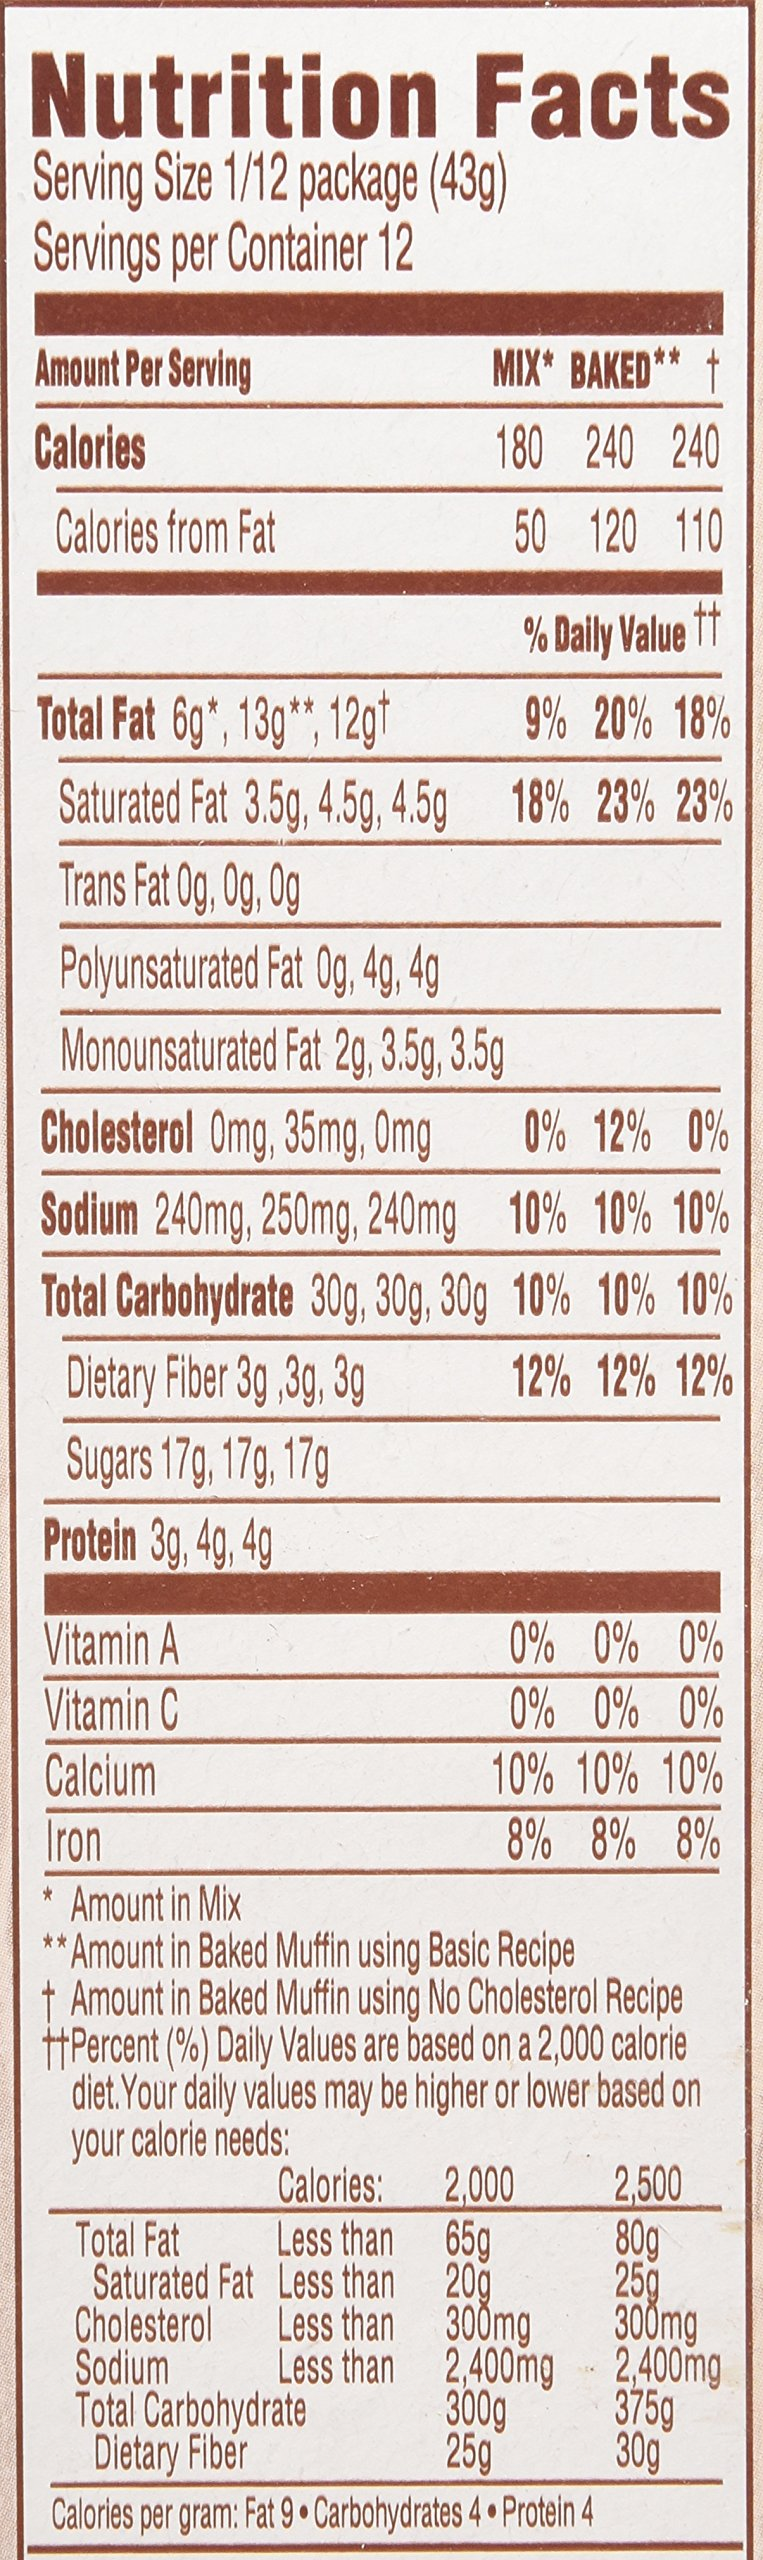 Duncan Hines Simple Mornings Muffin Mix, Triple Chocolate Chunk, 18.2 Ounce (Pack of 12) by Duncan Hines (Image #2)